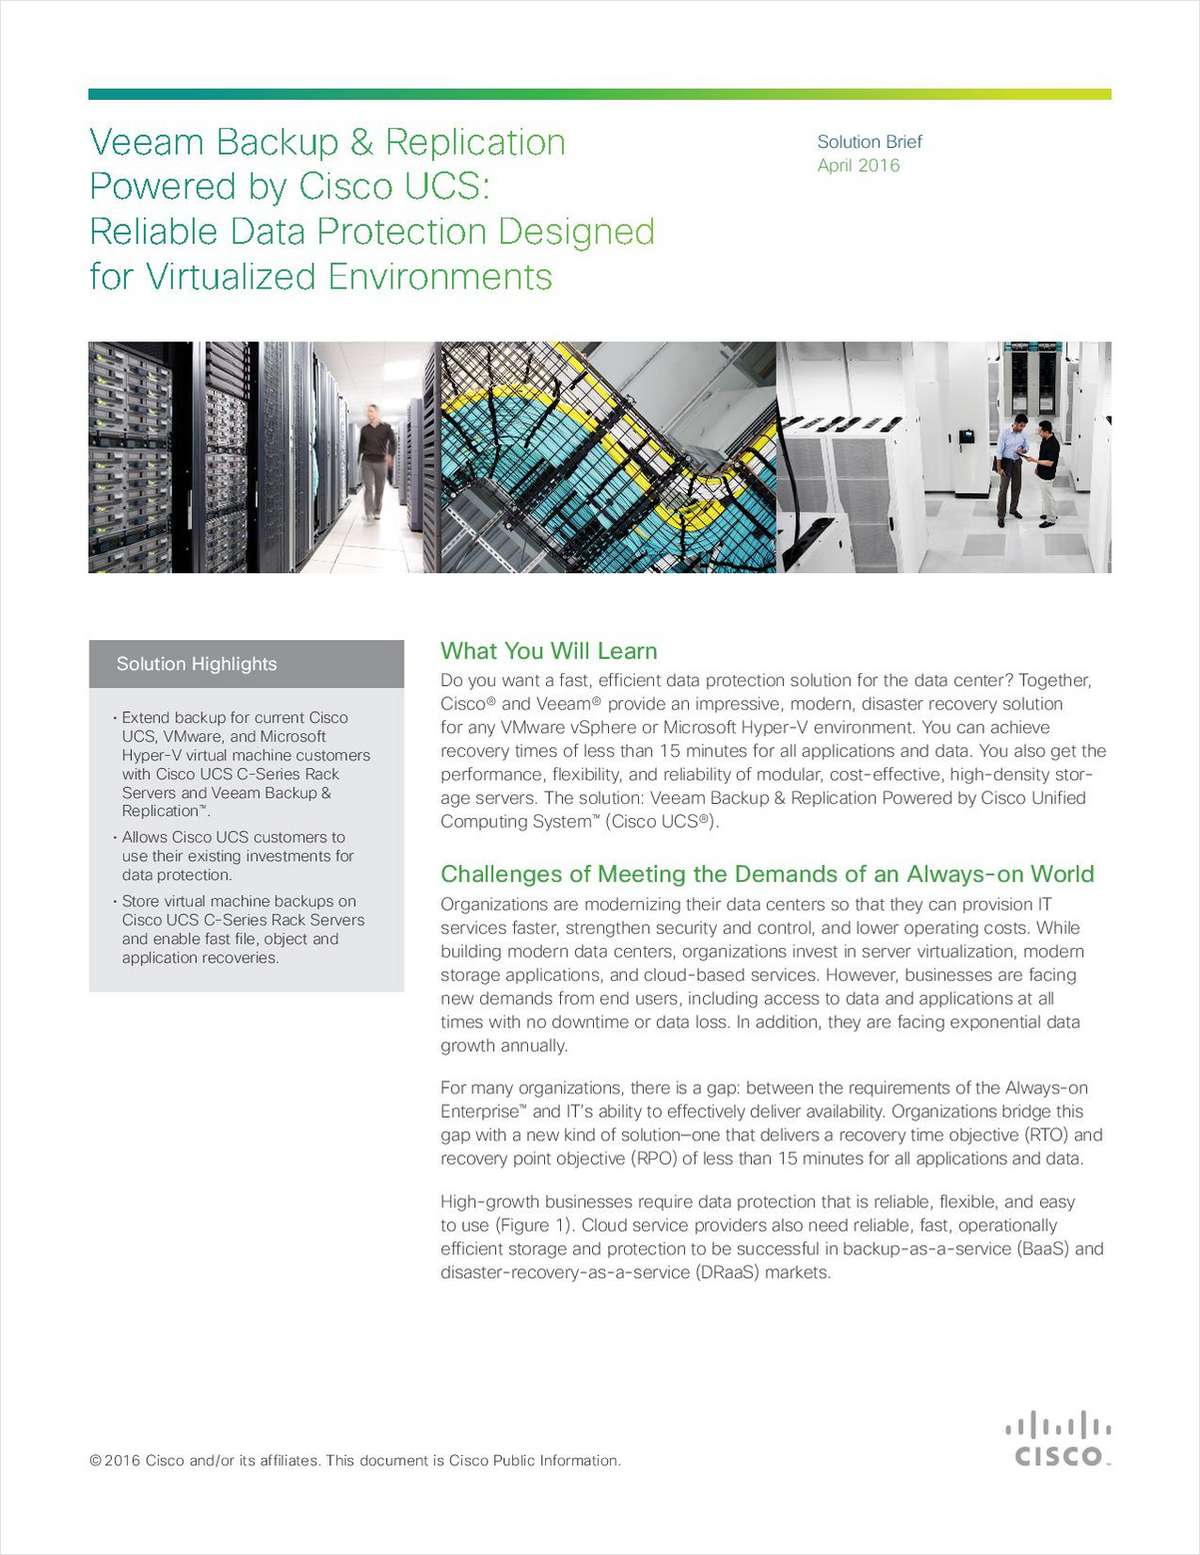 Veeam Backup & Replication Powered by Cisco UCS: Reliable Data Protection Designed for Virtualized Environments